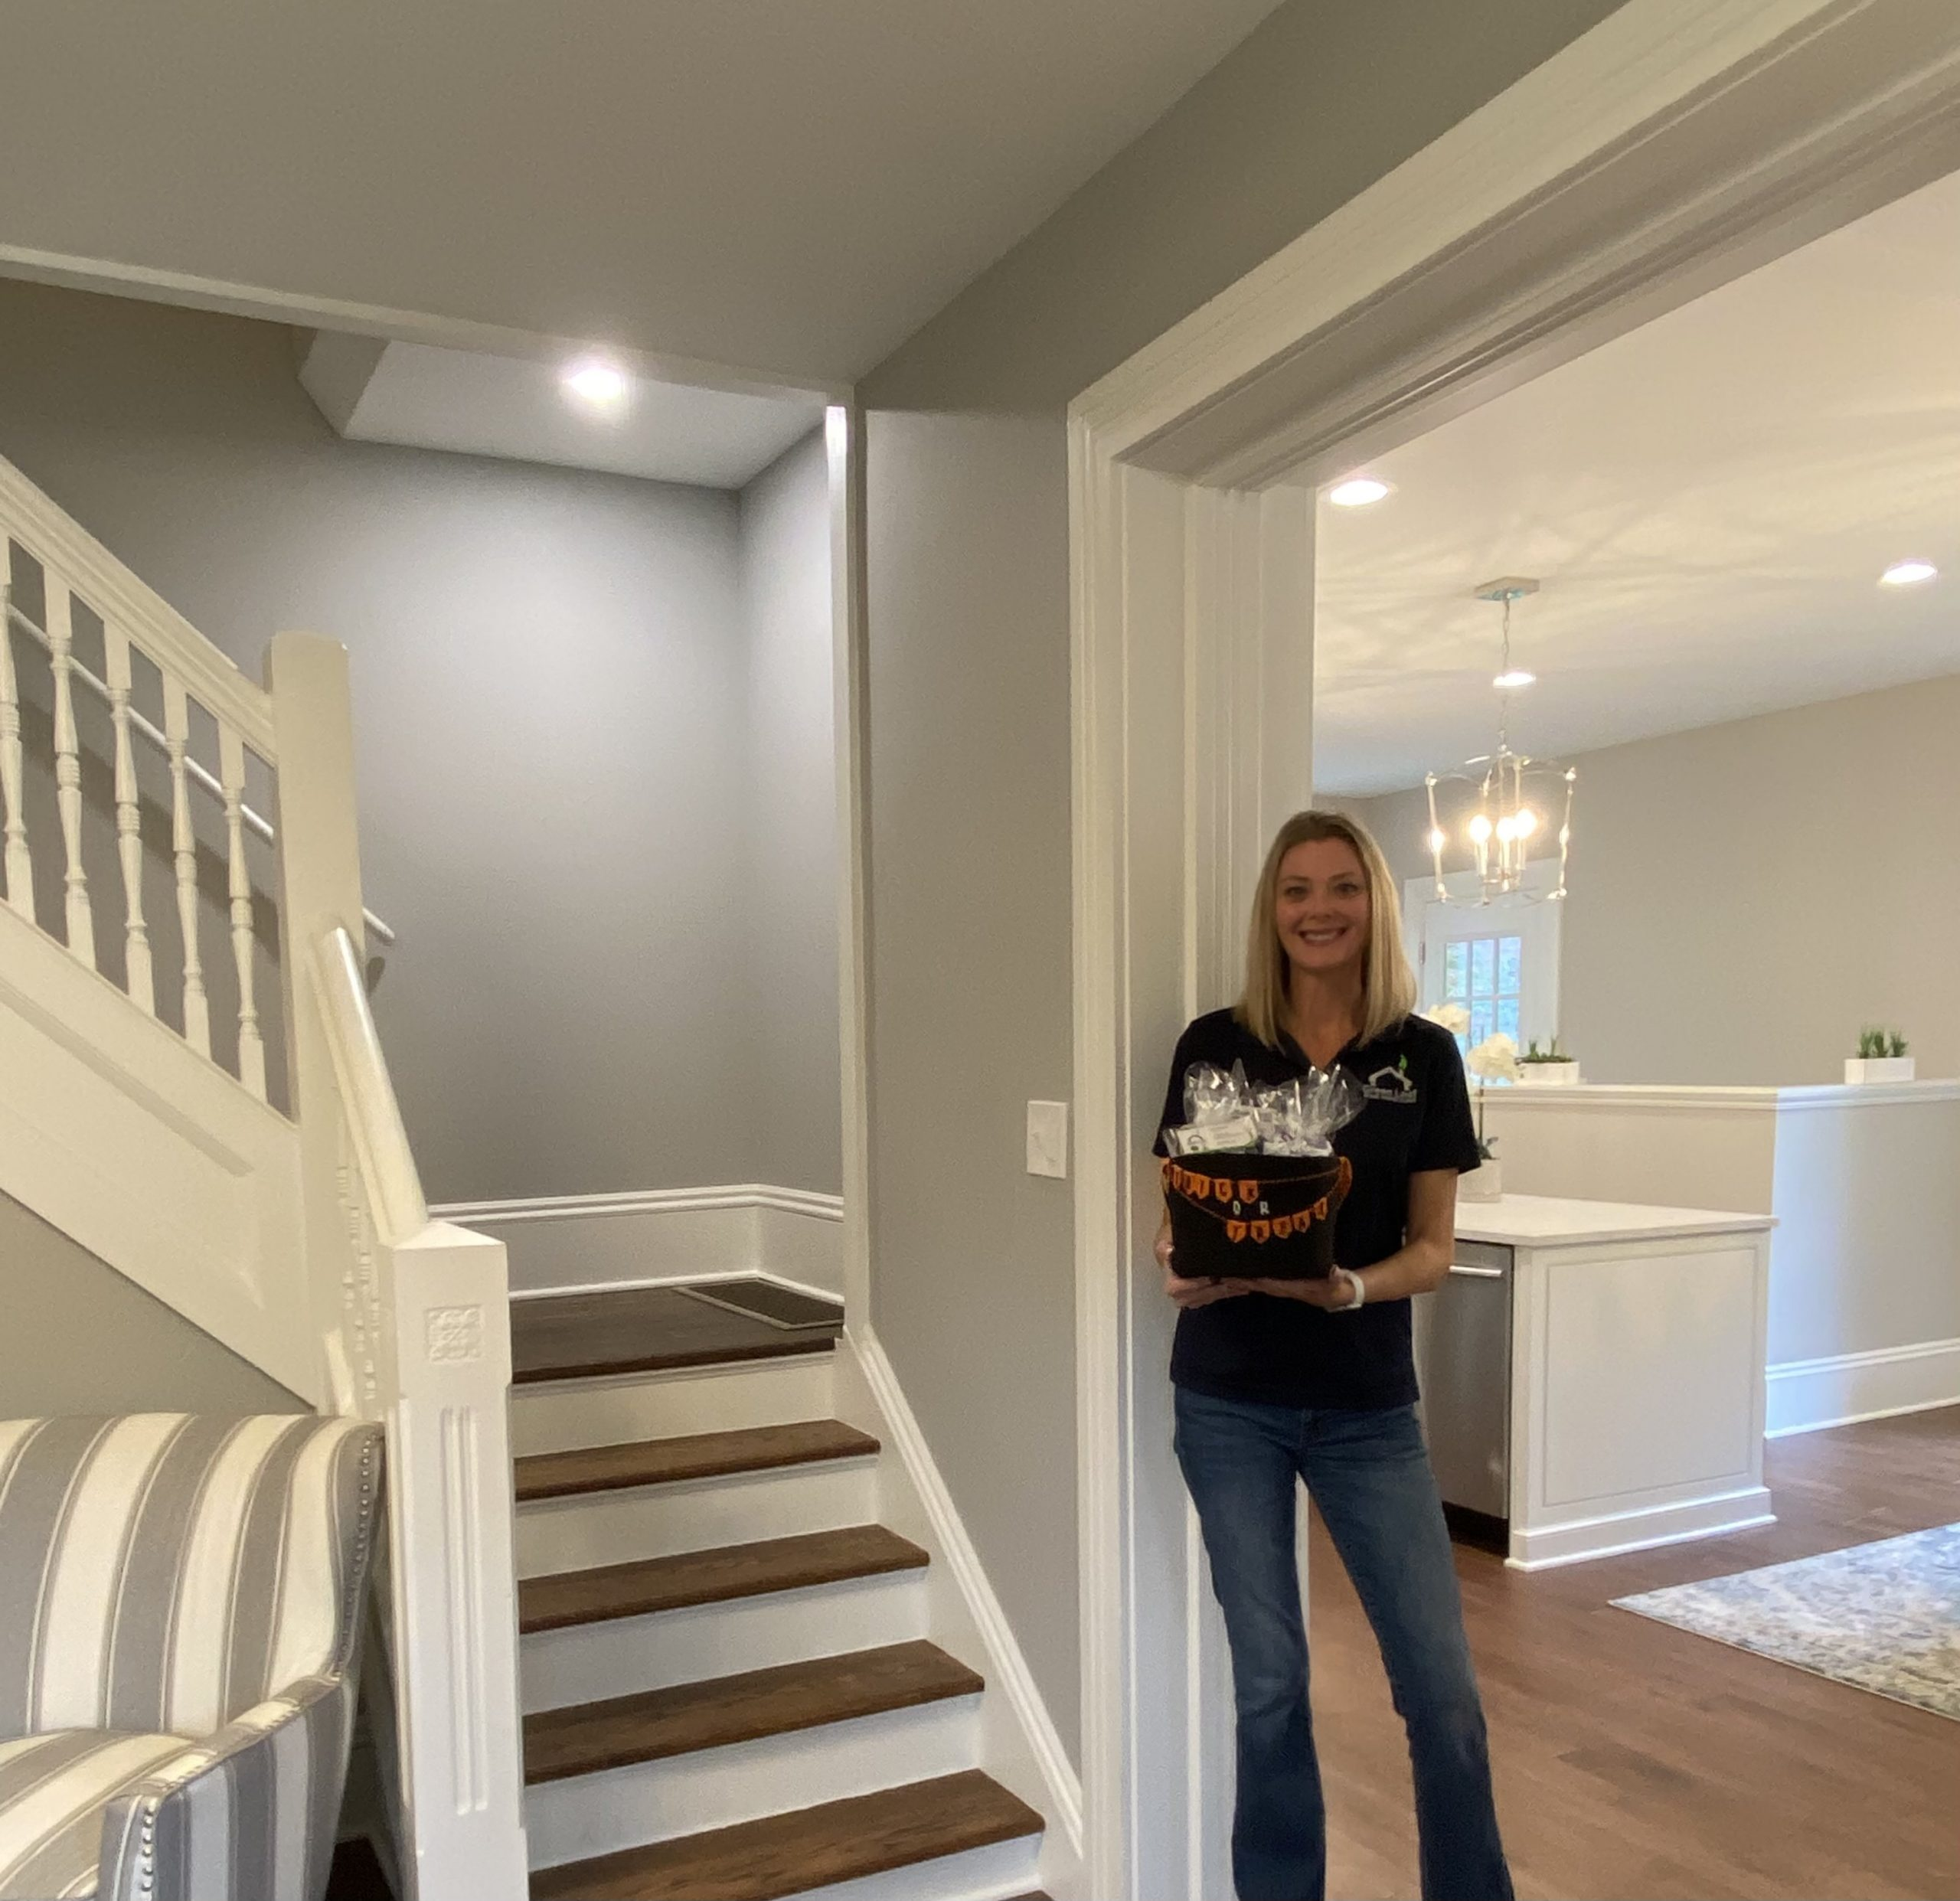 It's been many months since this Brand Ambassador has been out on Brokers Tour for Green Leaf Home Inspections. It was great to meet so many new faces and share the services of GLHI. Who's representing you?